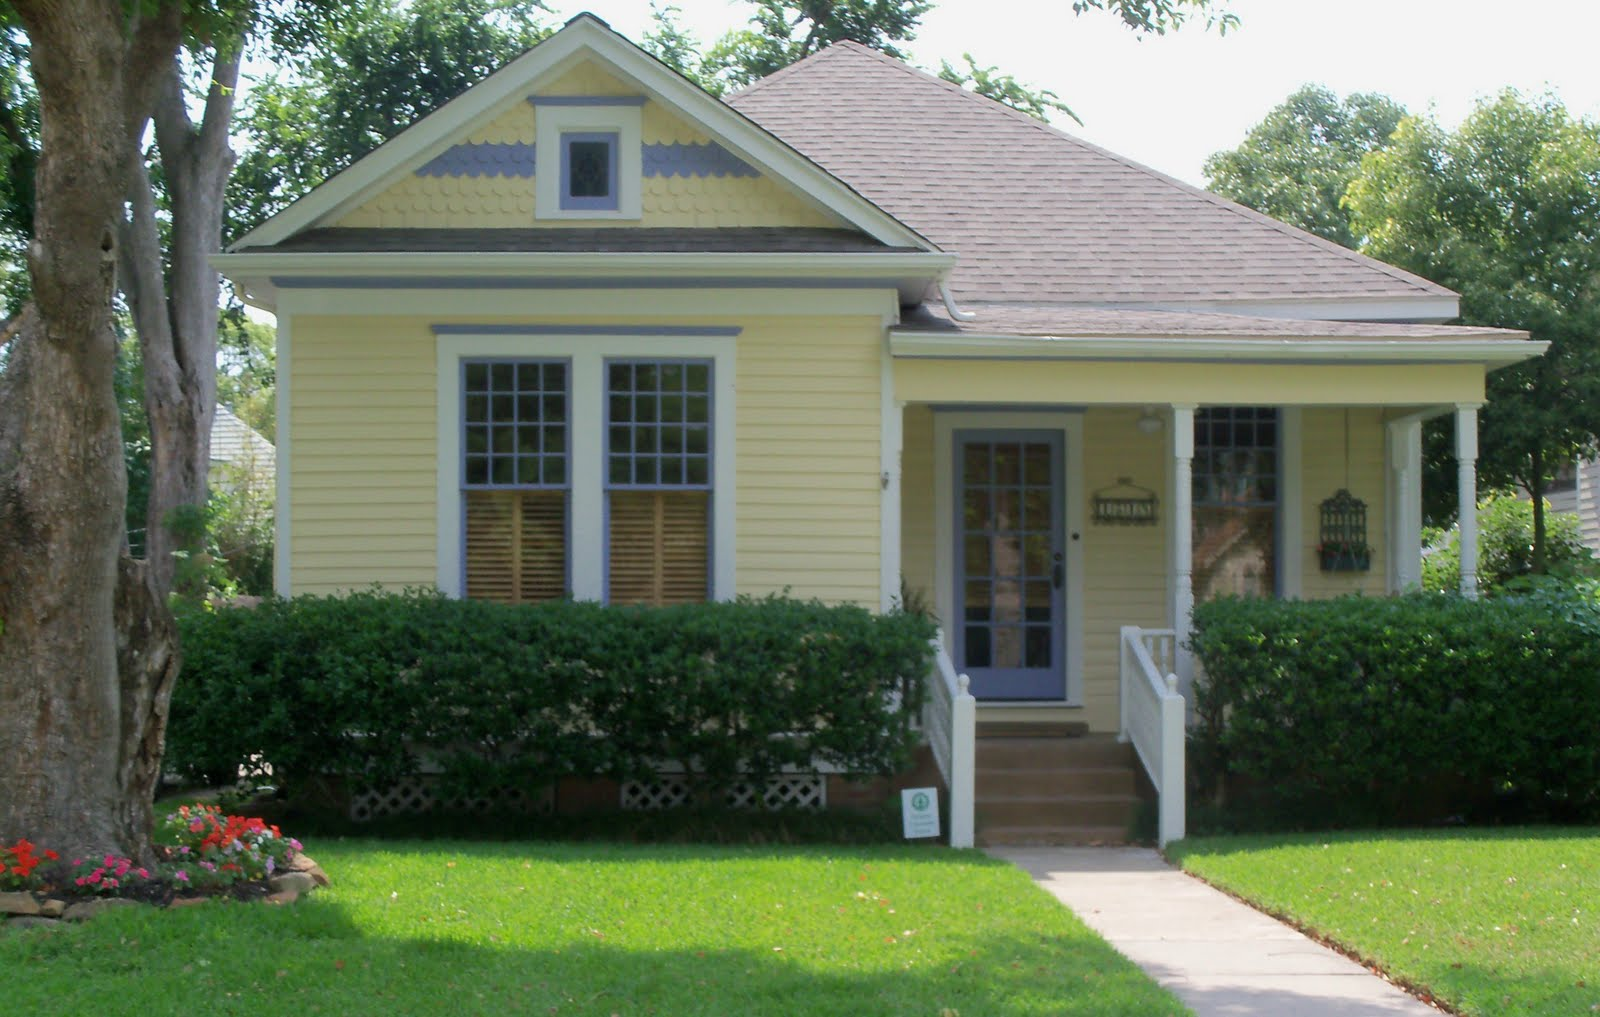 Bungalows paint colors and exterior paint on pinterest - Fall Round Up The Best Exterior House Colours For 2013 Hawthorne Yellow Benjamin Moore And Stained Decks